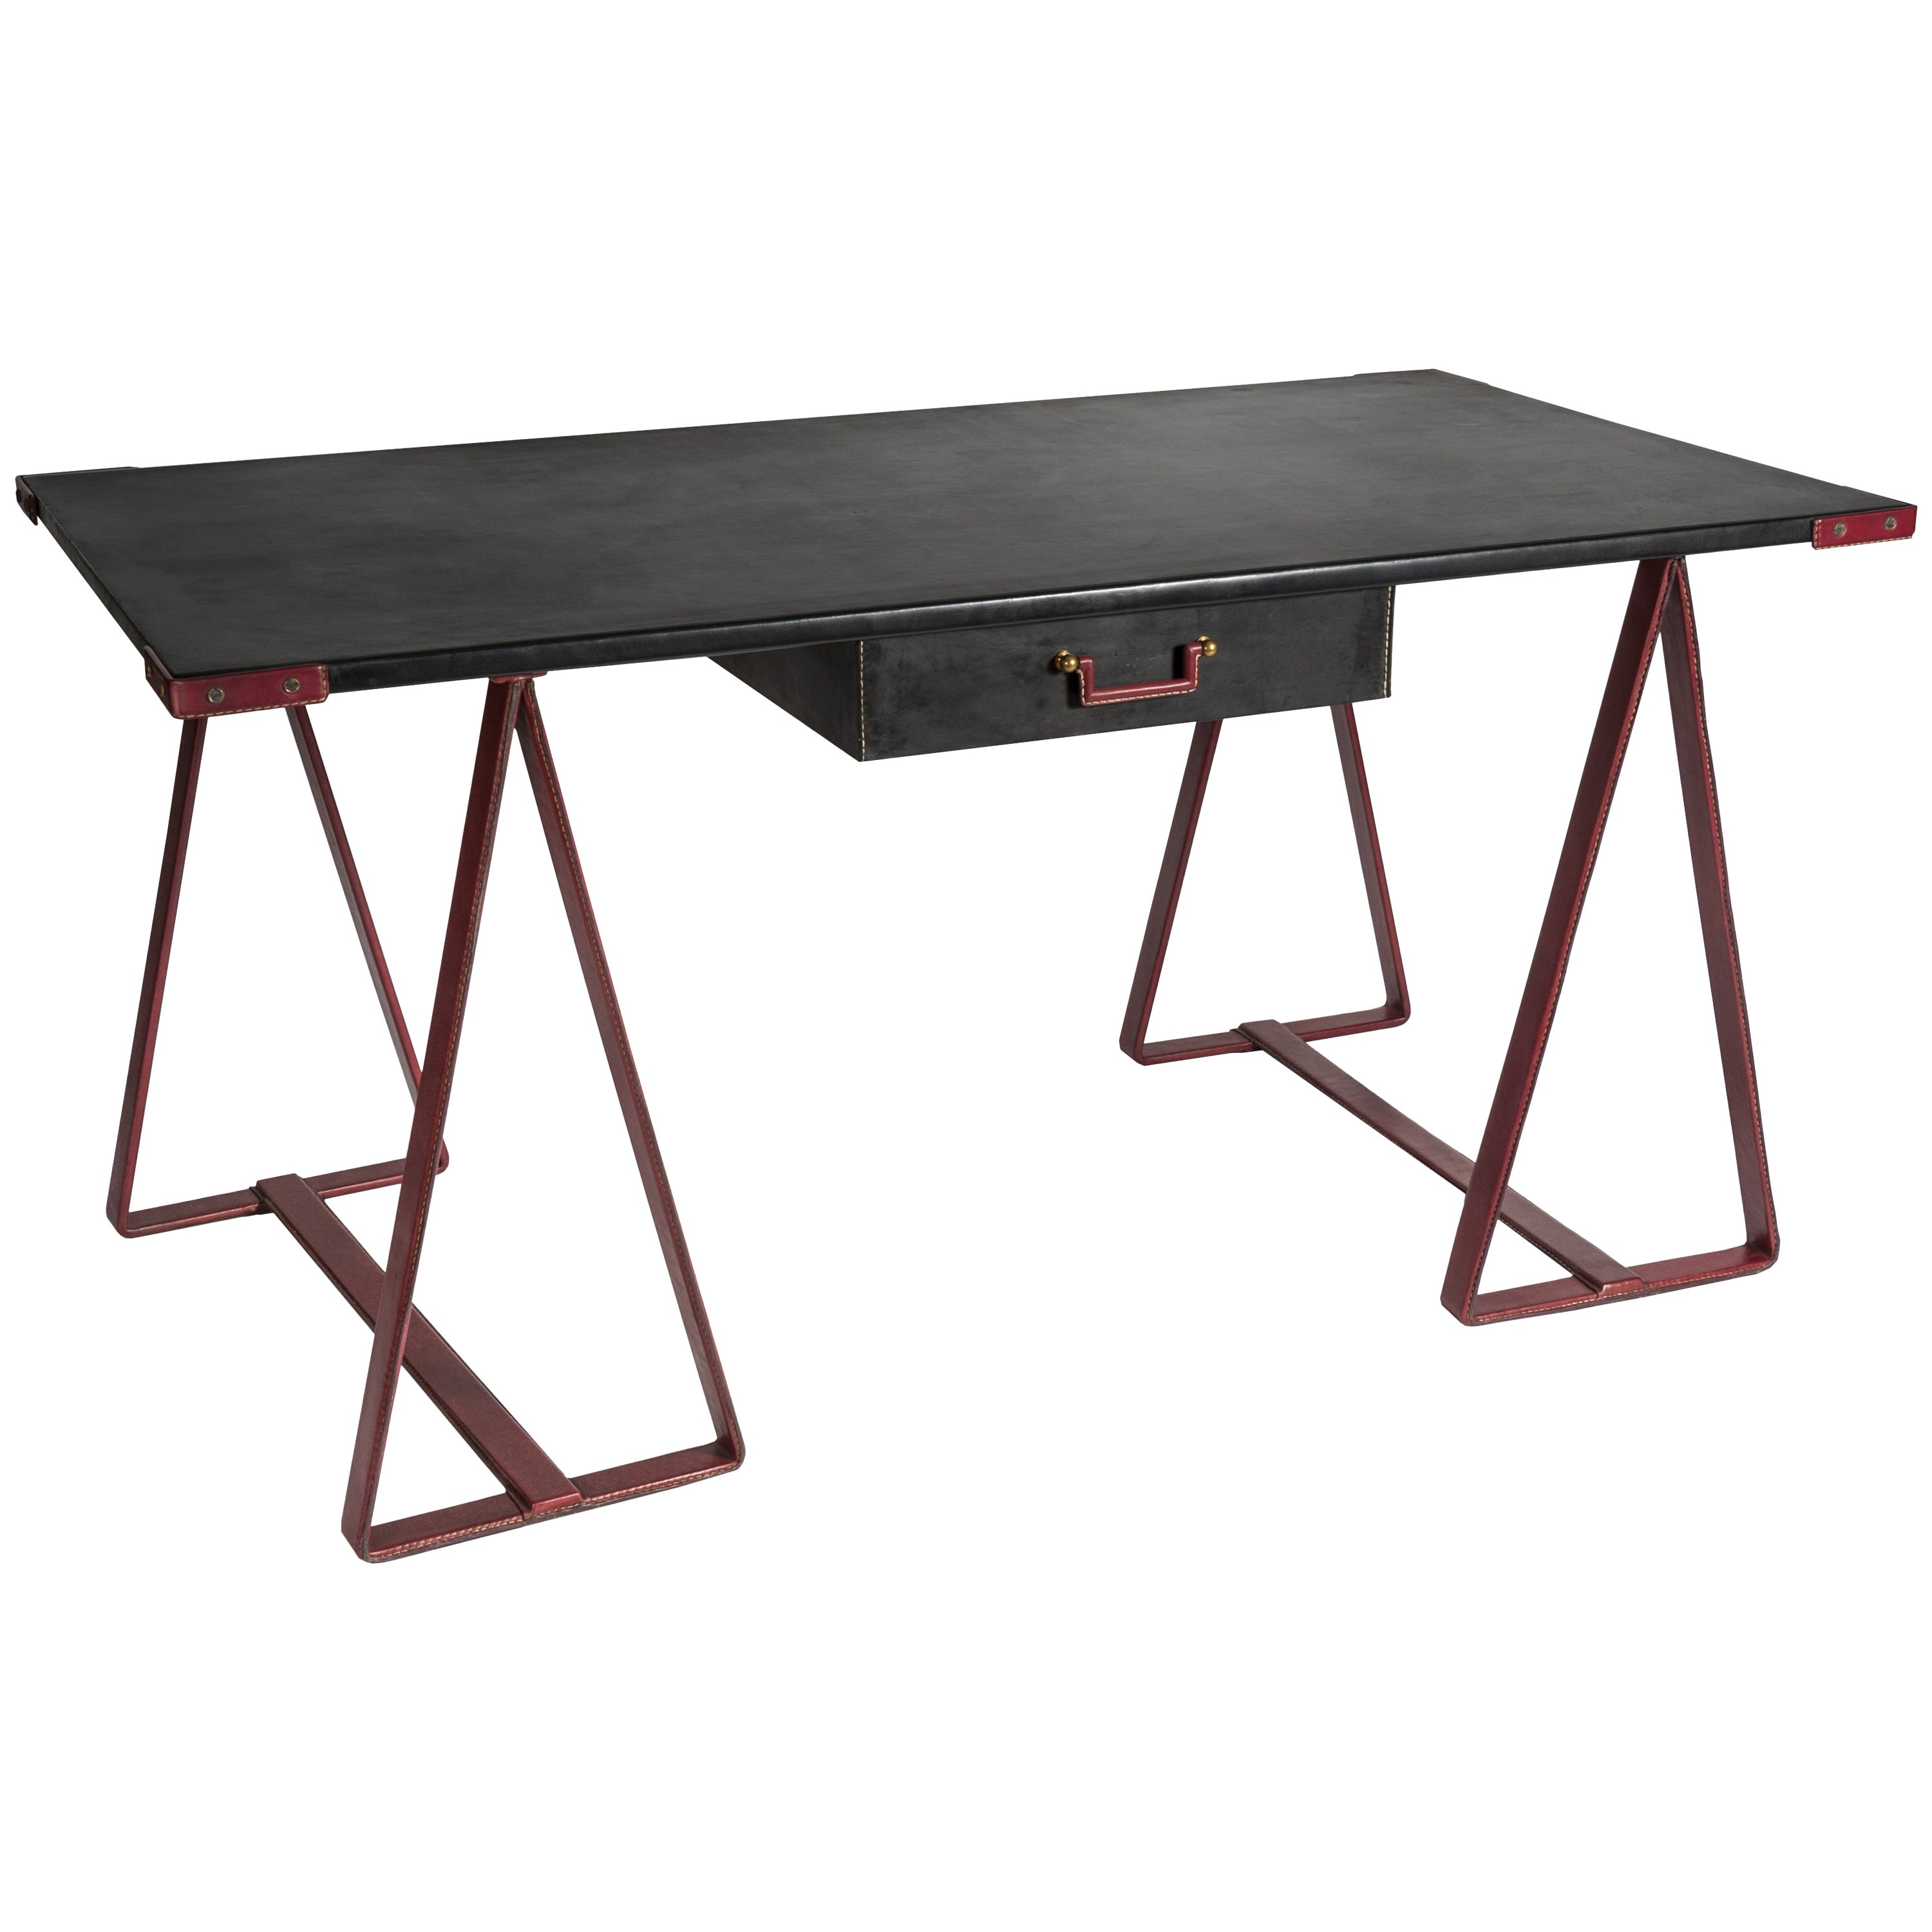 Rare Stitched Leather Desk by Jacques Adnet